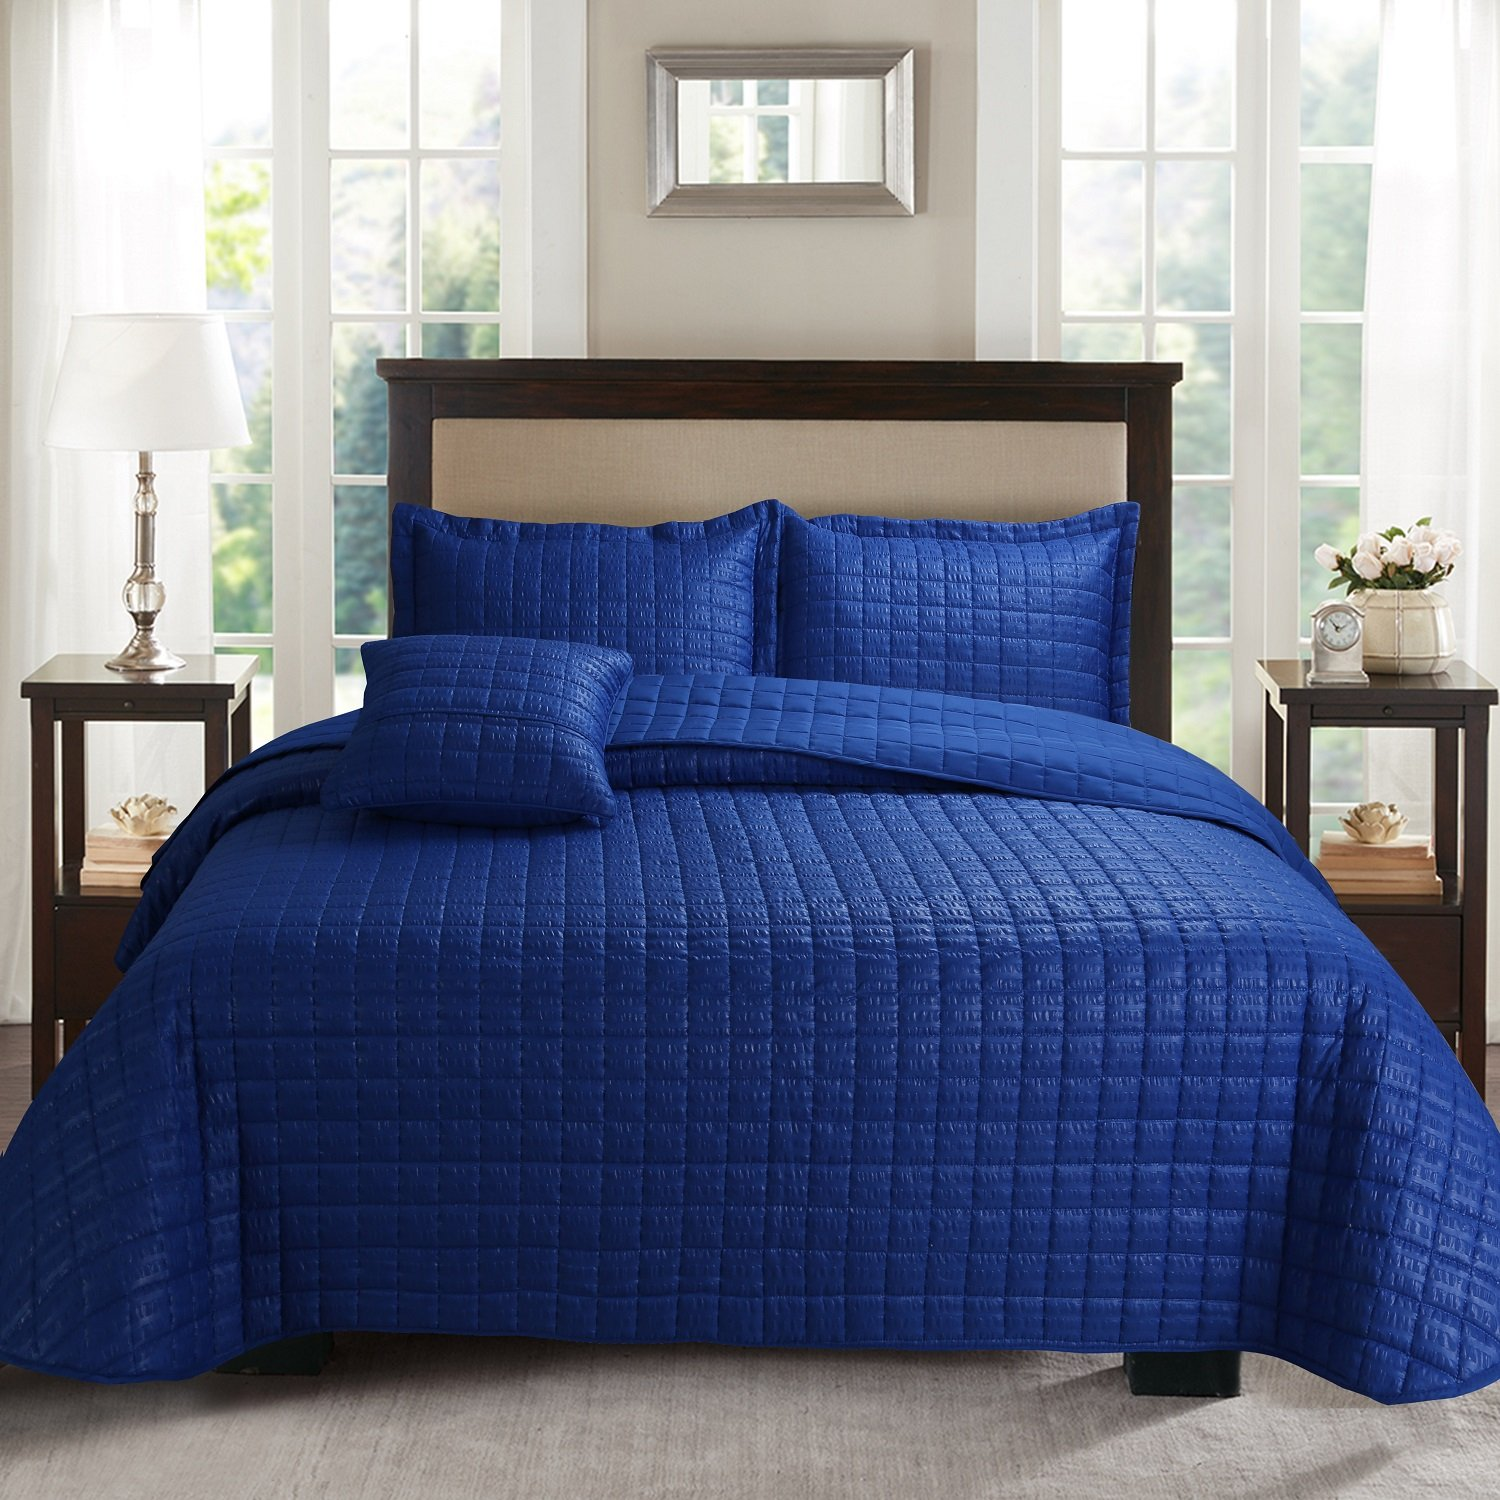 4-Piece Bubble Reversible Solid Quilt set with Shams, as Bedspread,Coverlet, Blanket, summer quilt or Bed Cover,King size-Soft, Lightweight and Hypoallergenic, all seasons(BLU ROYAL, 106X96)